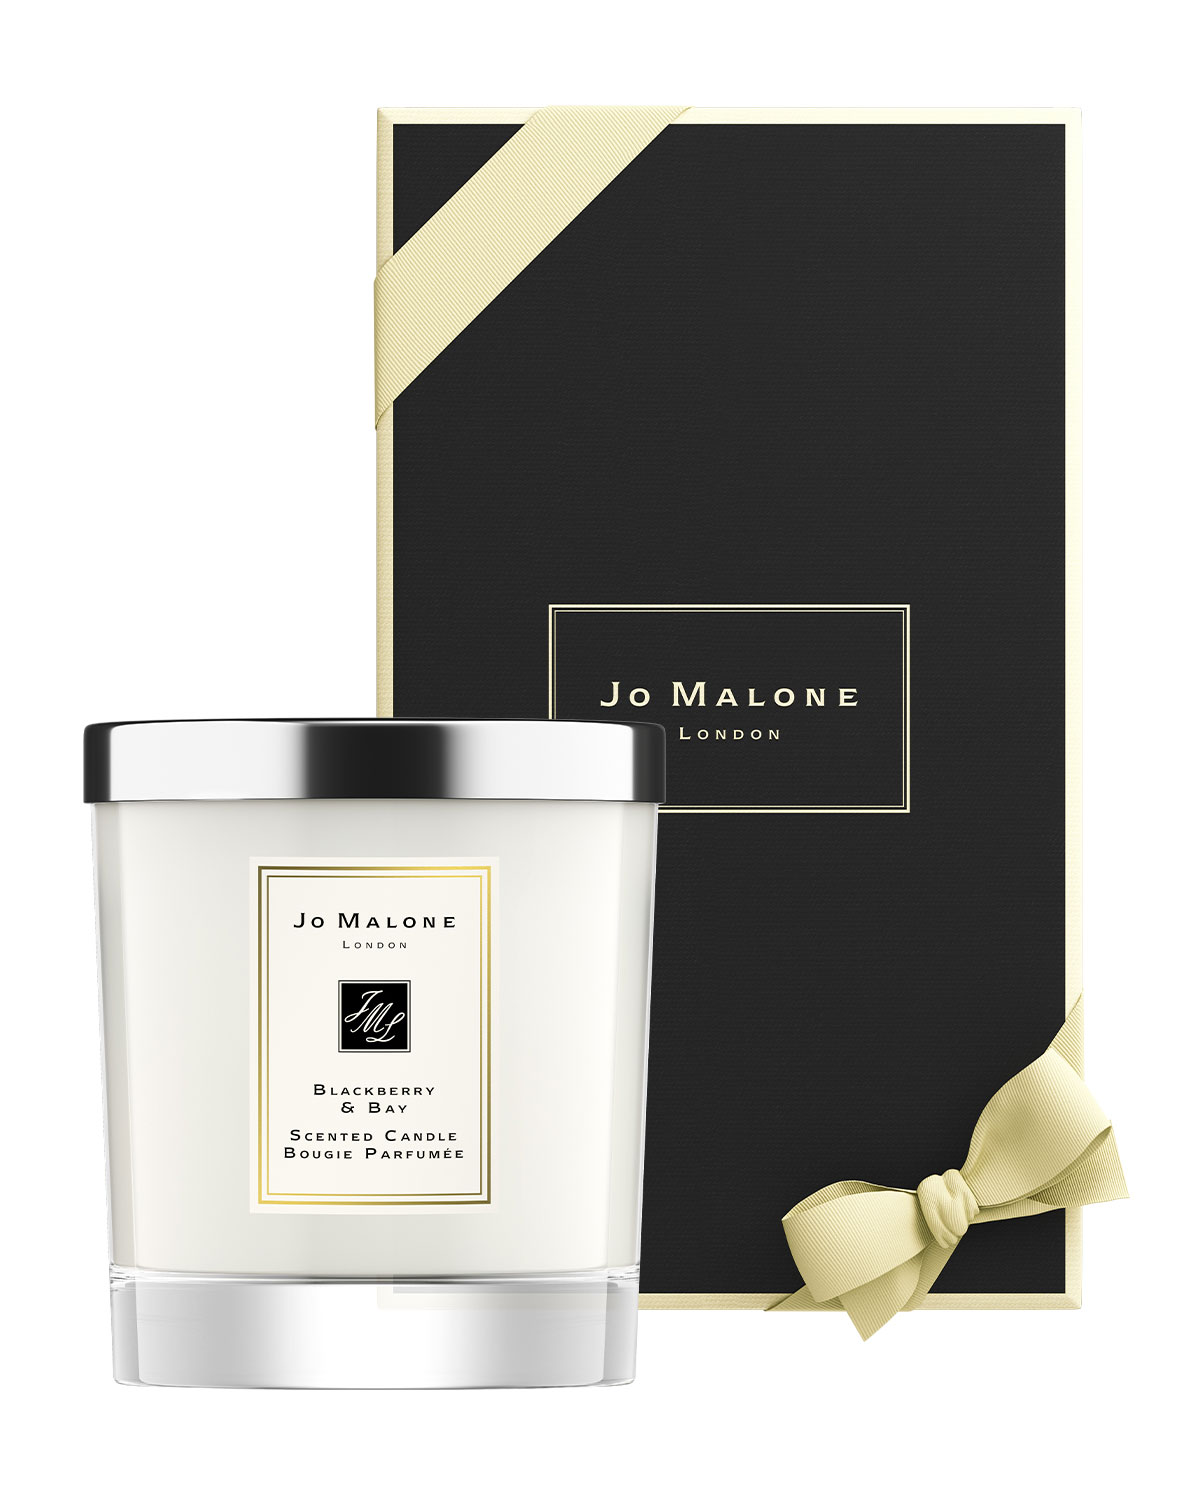 Jo Malone London Blackberry & Bay Scented Home Candle, 7 Oz